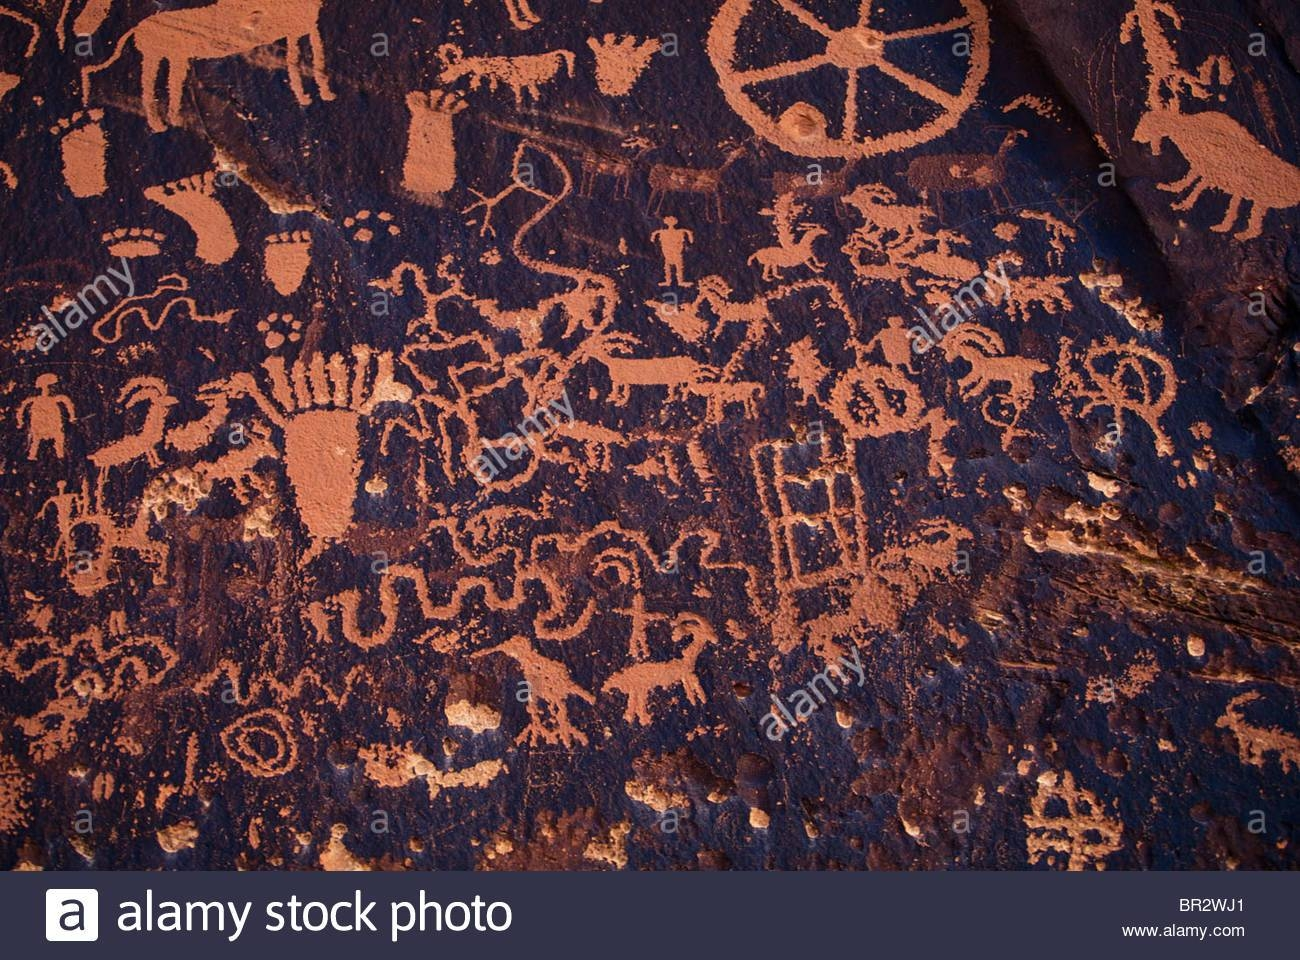 Native American Cave Art/wall Drawings Stock Photo, Royalty Free pertaining to Newest Native American Wall Art